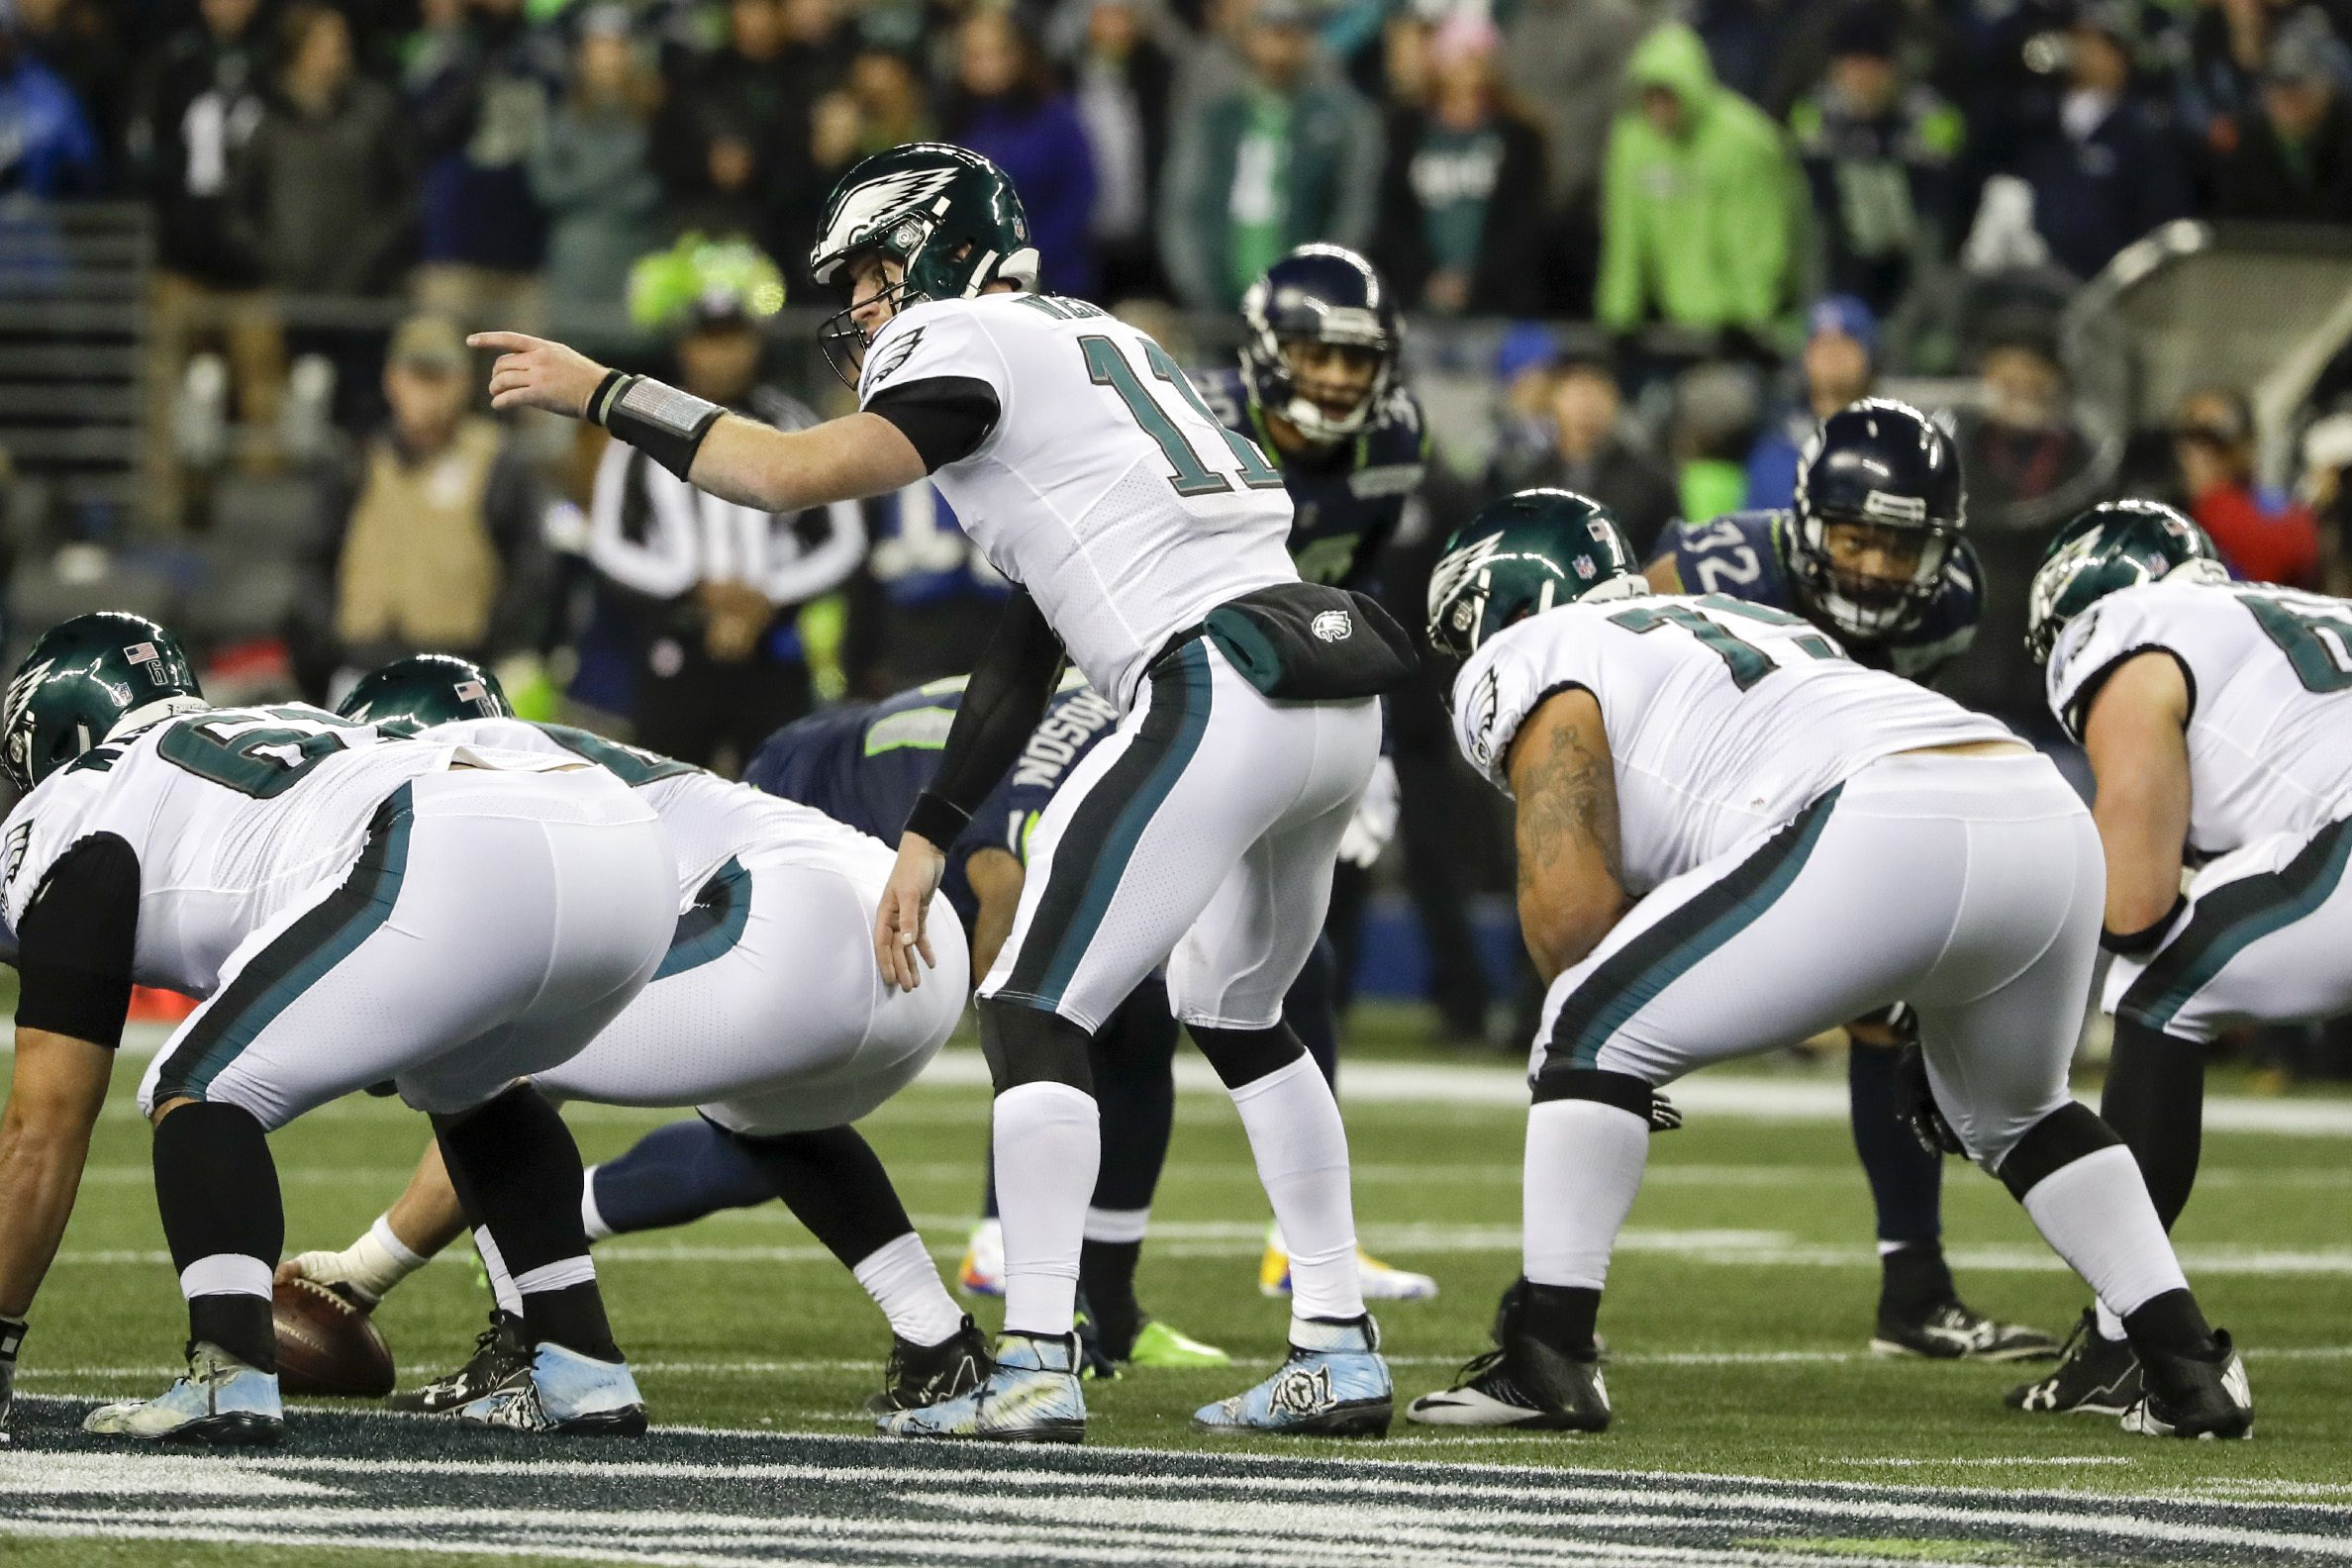 Eagles quarterback Carson Wentz points at the line against Seattle Seahawks on Sunday, December 3, 2017 at CenturyLink Field in Seattle. YONG KIM / Staff Photographer